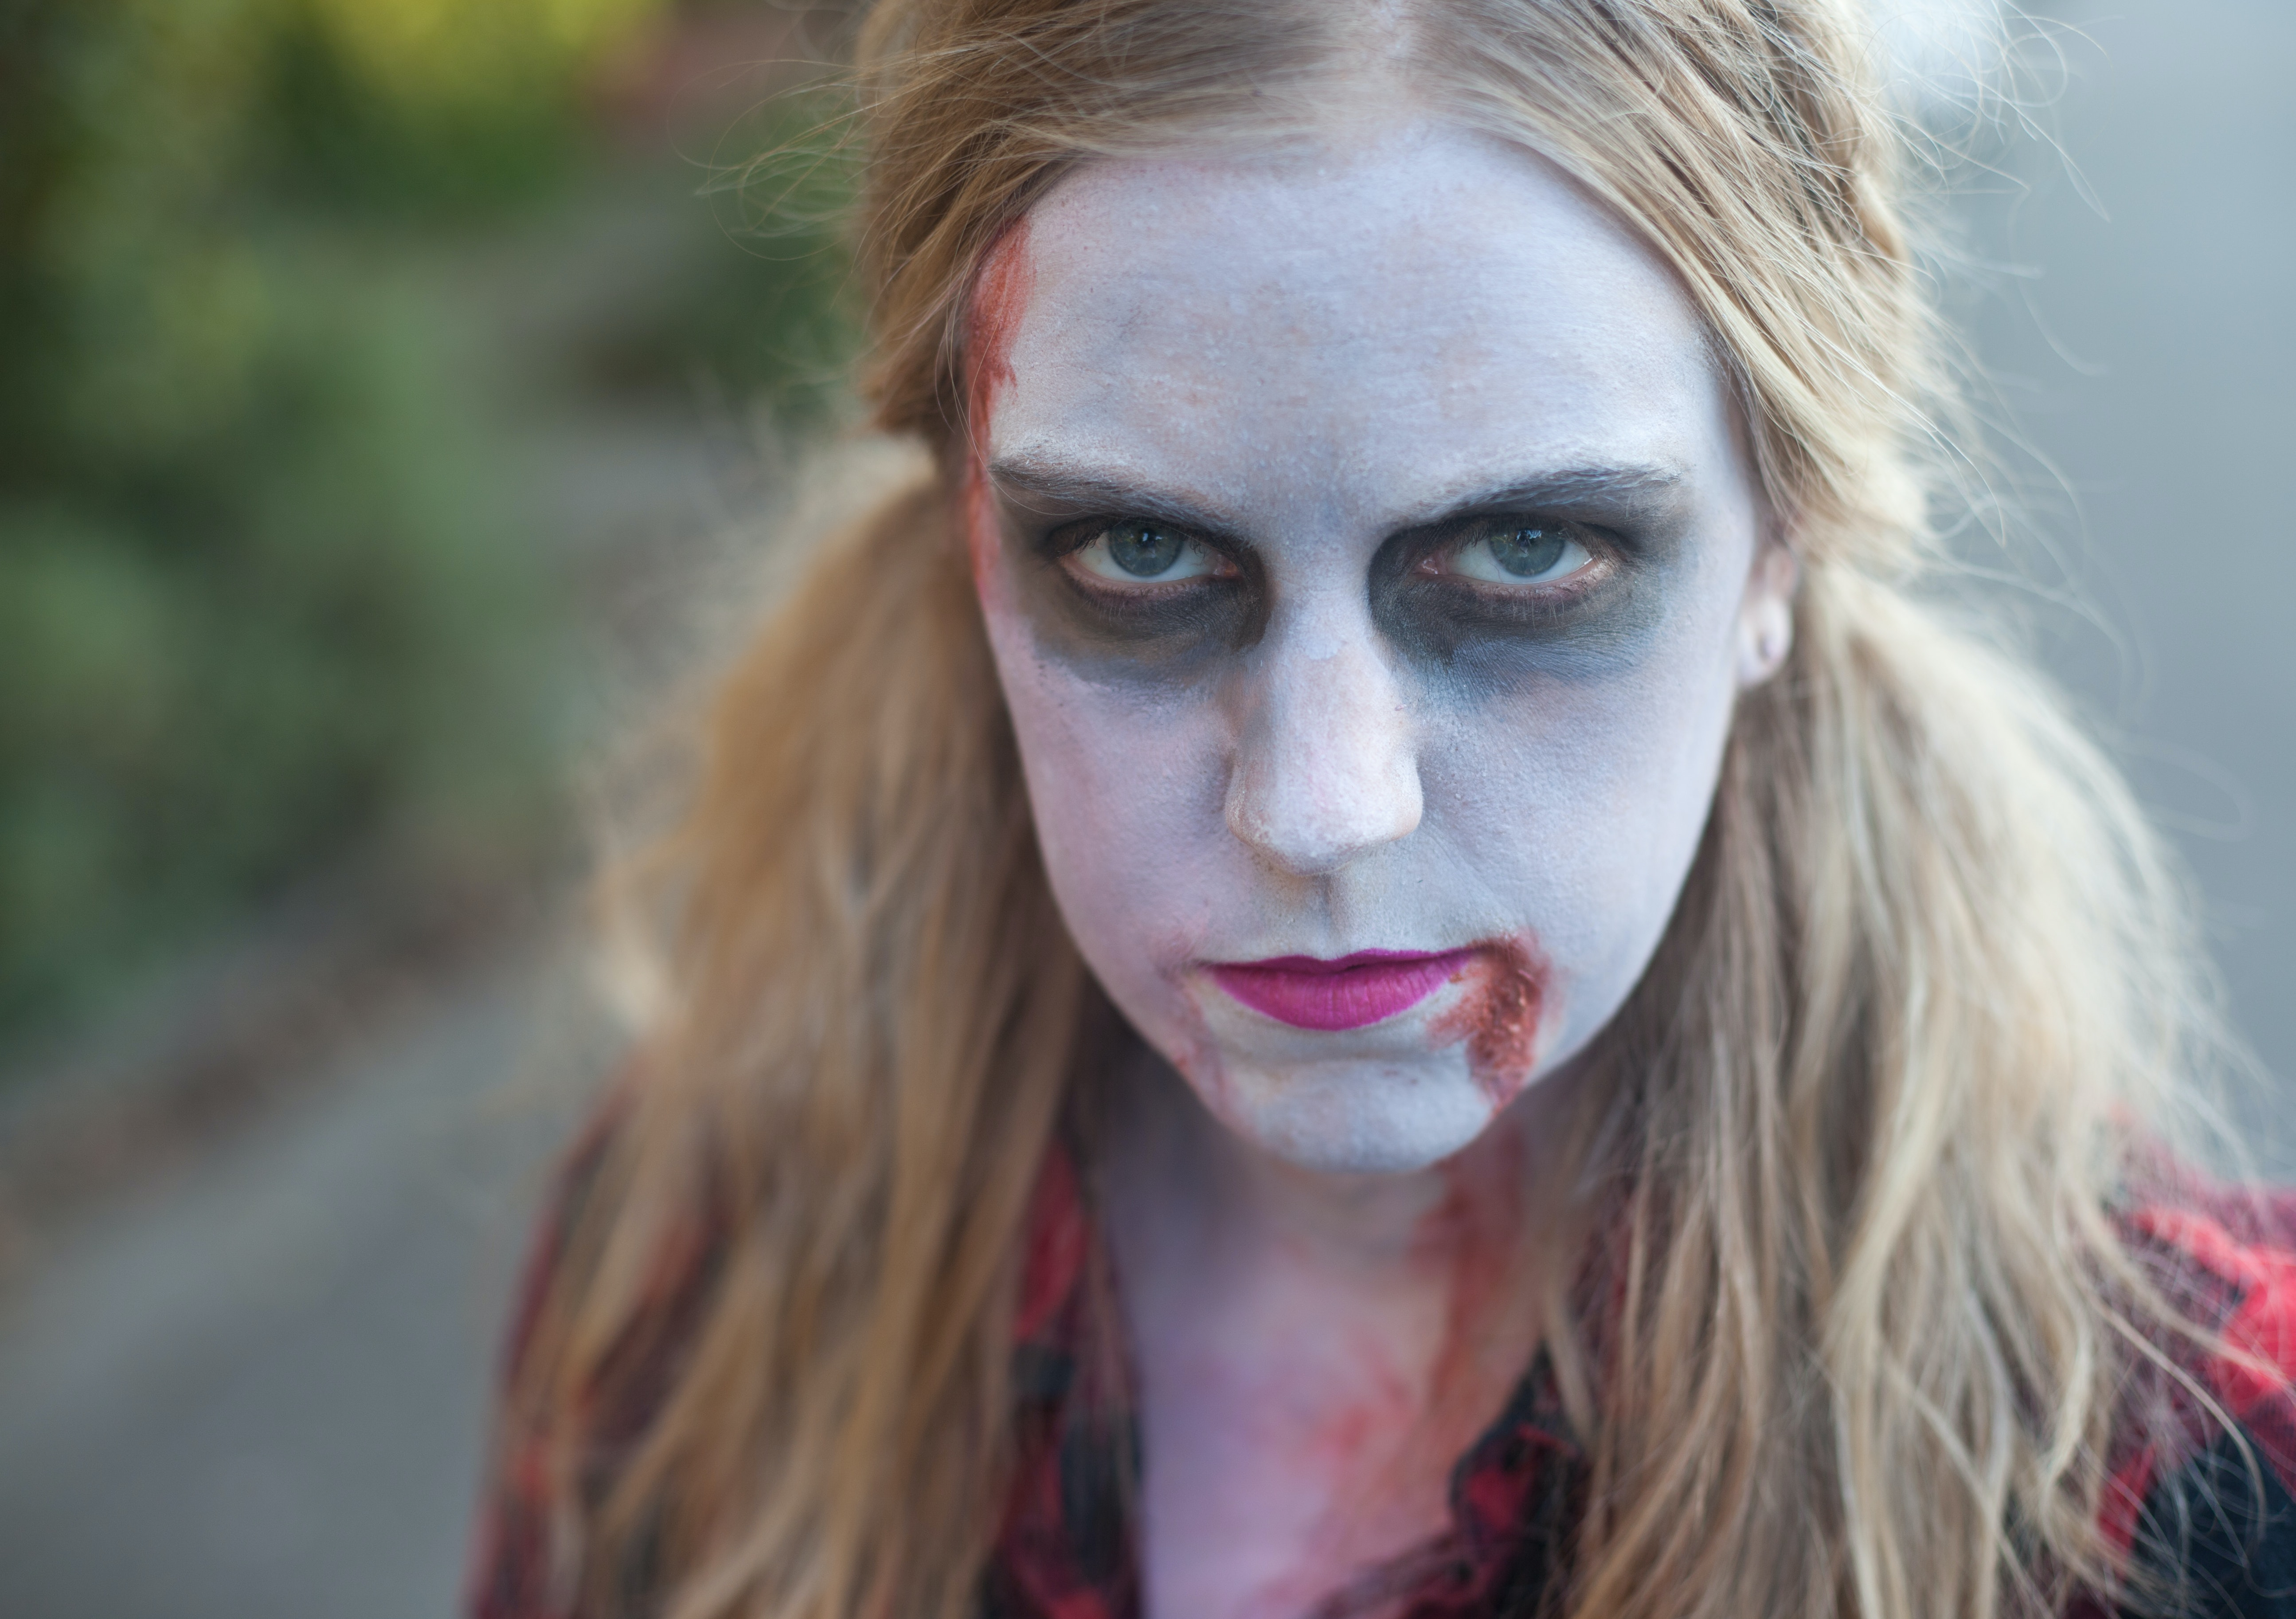 9 Easy Halloween Makeup Ideas From Zombies To Sexy Vampires To ...